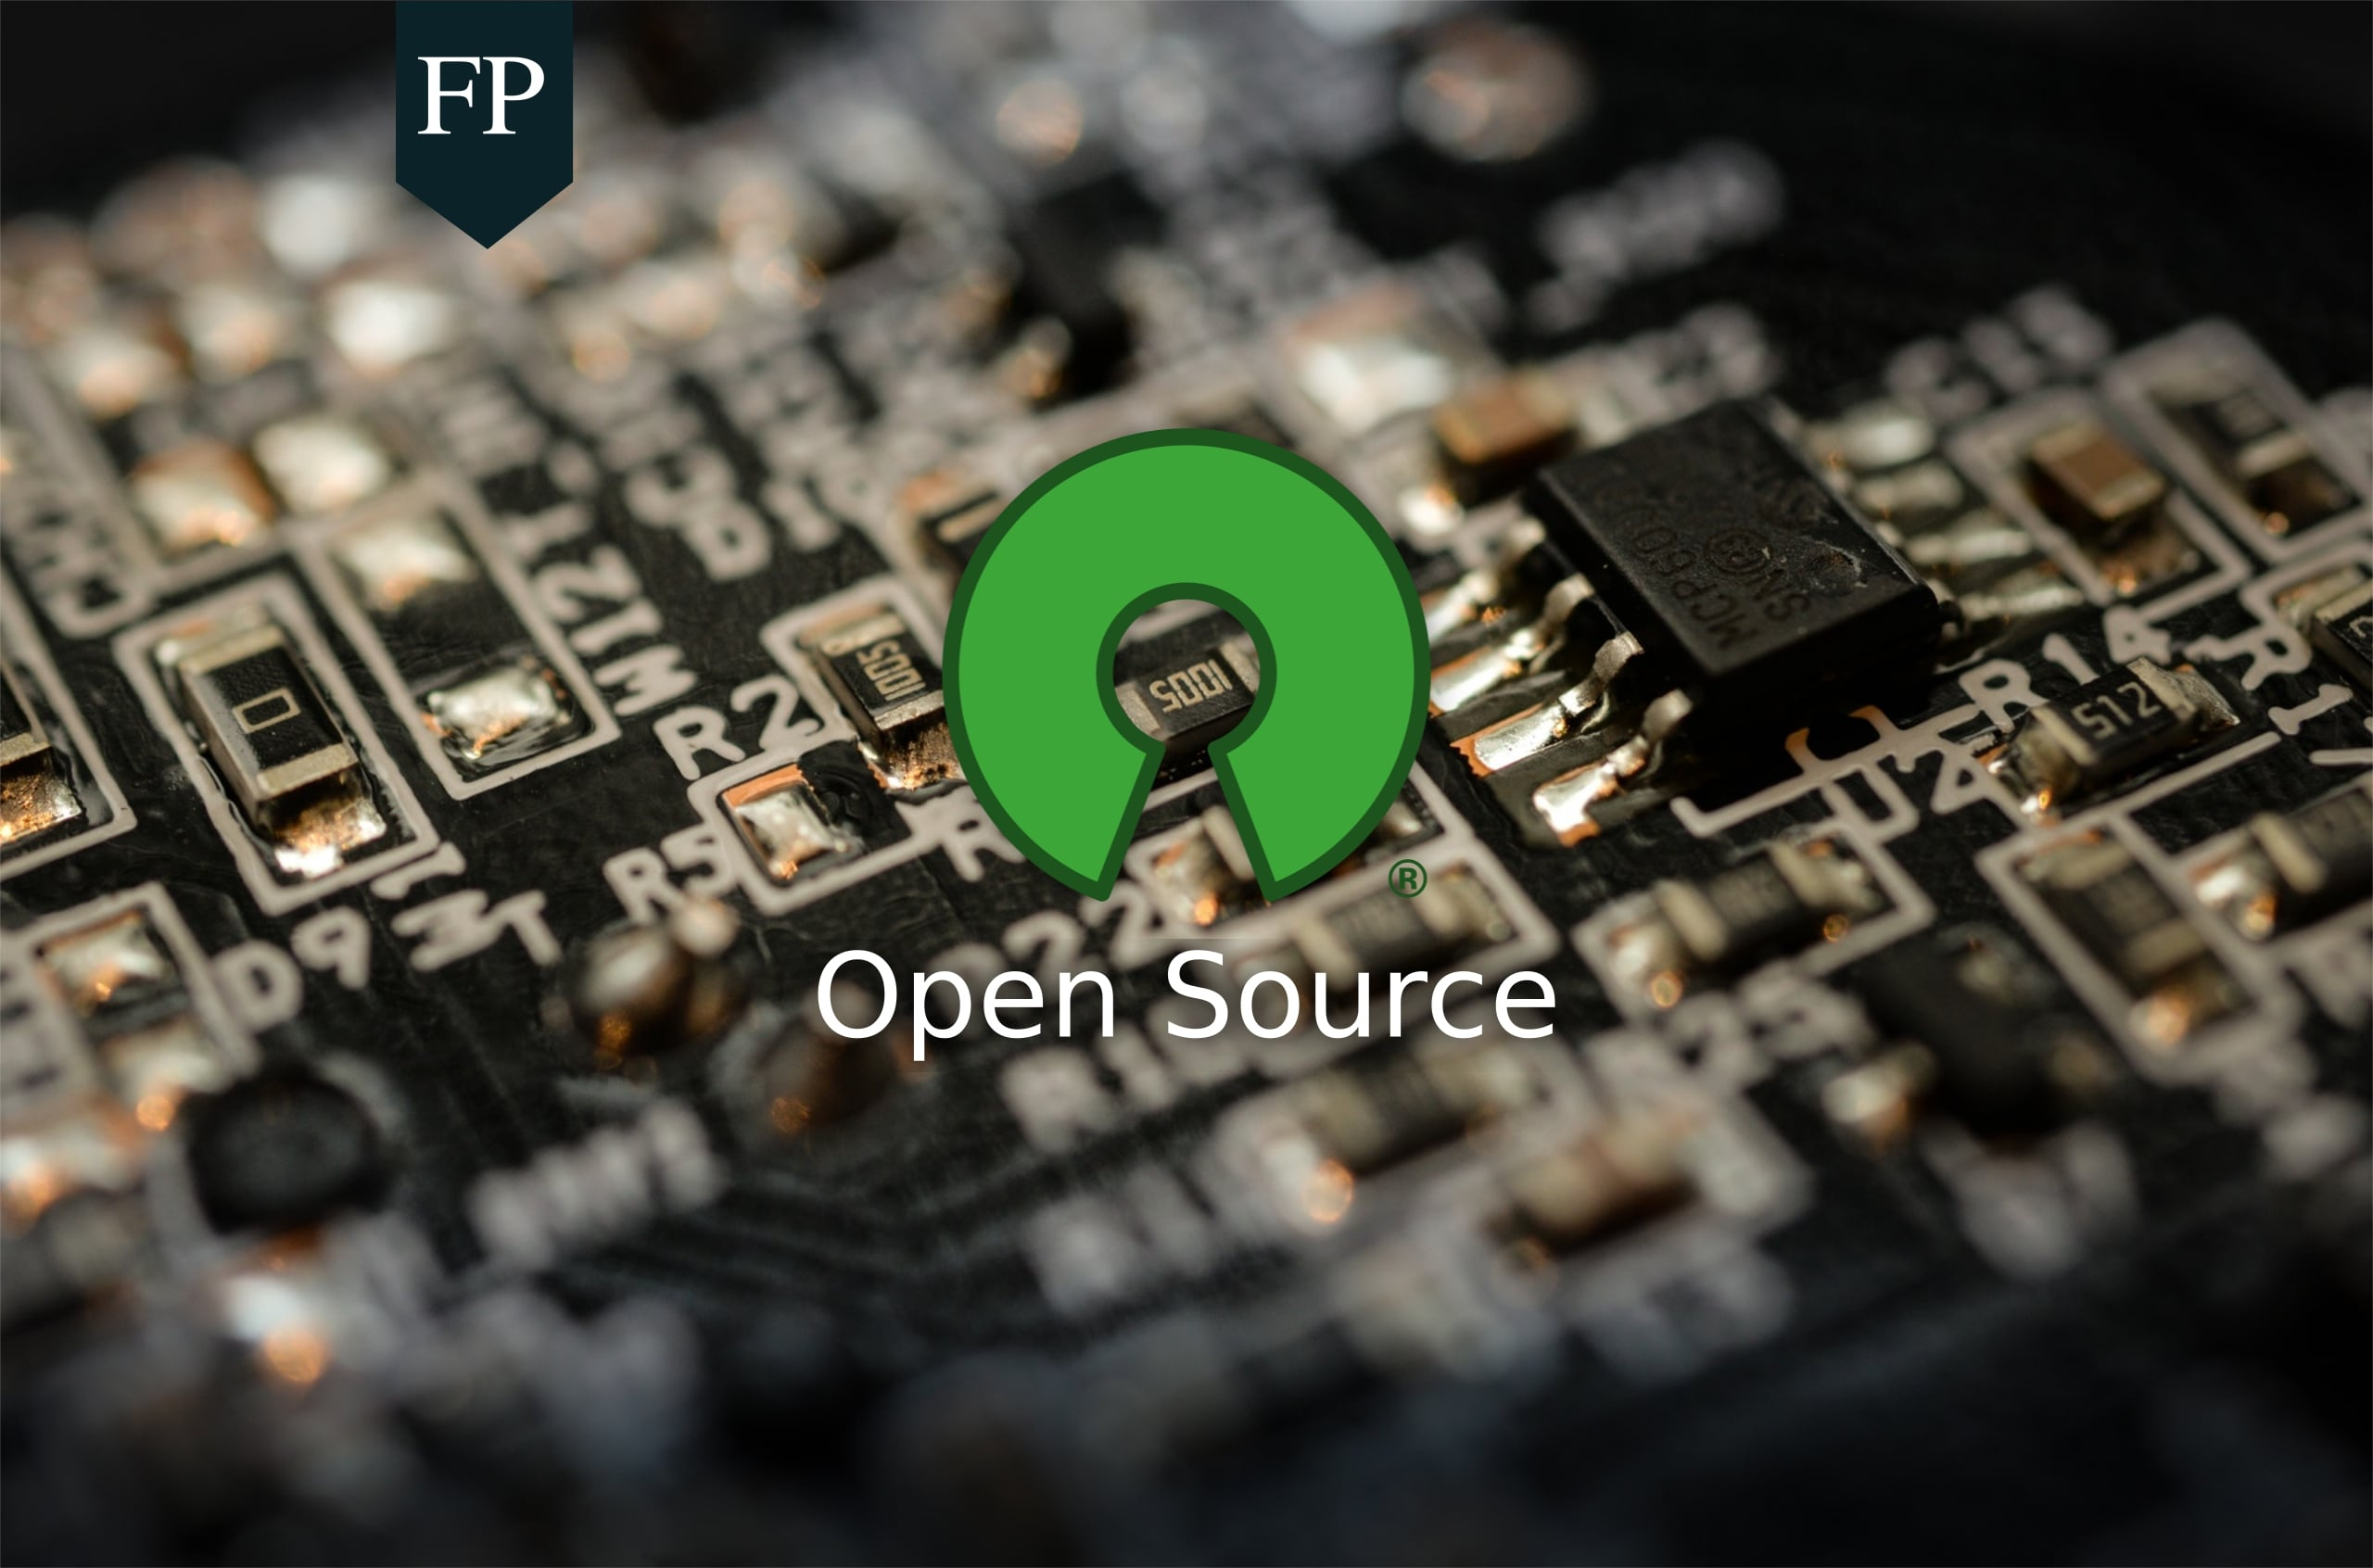 14 open source